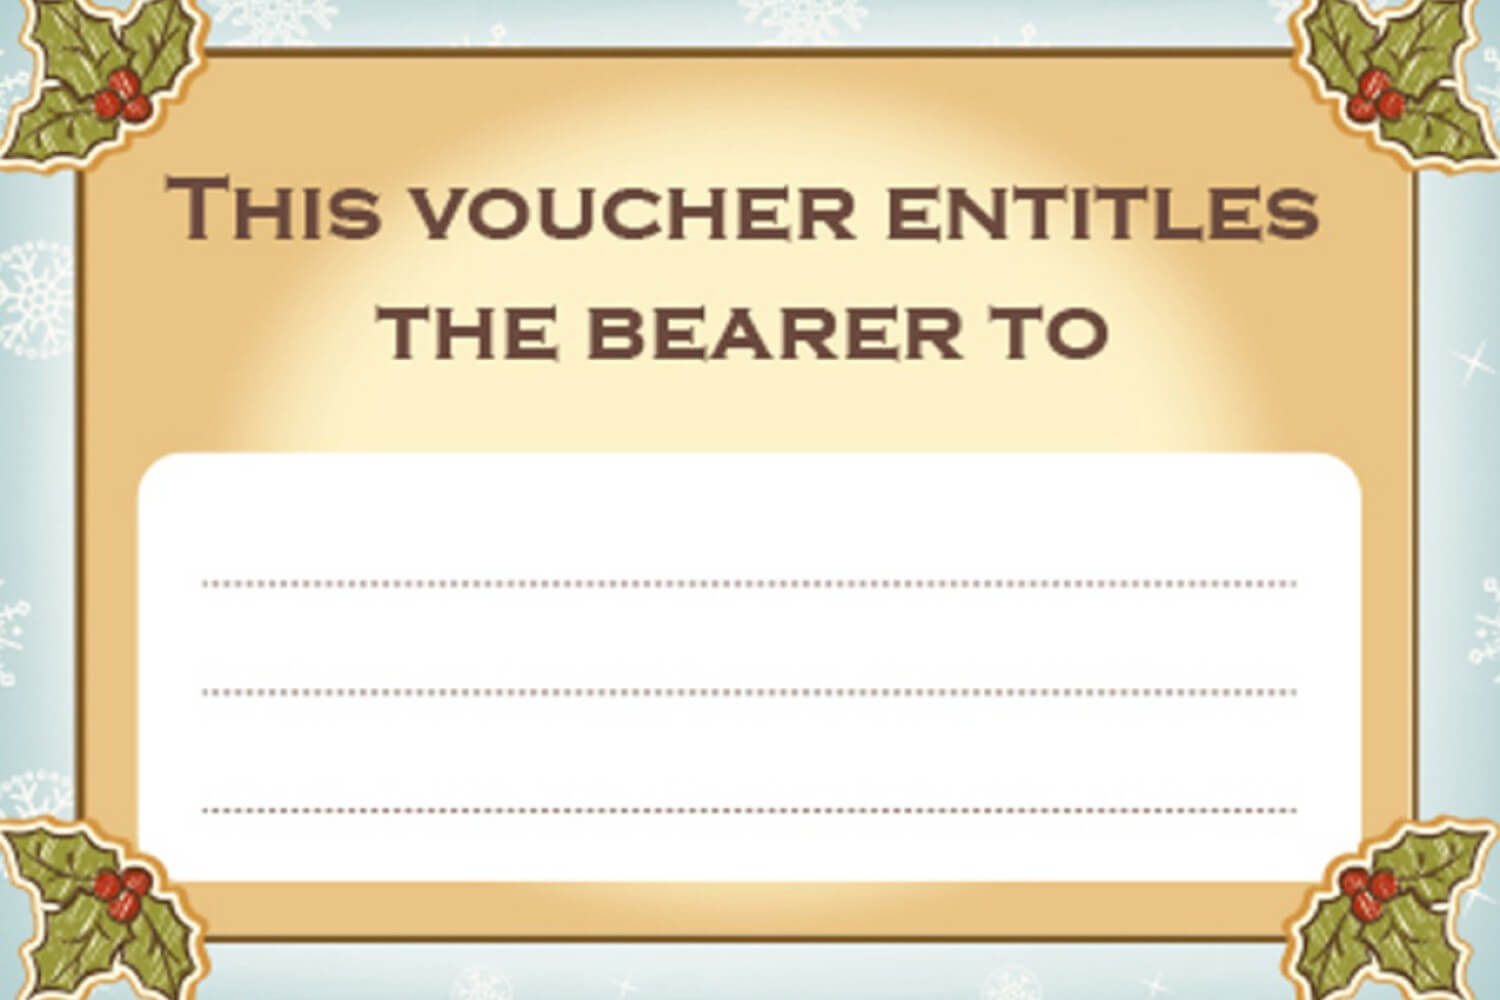 This Certificate Entitles The Bearer Template - Bizoptimizer within This Certificate Entitles The Bearer To Template